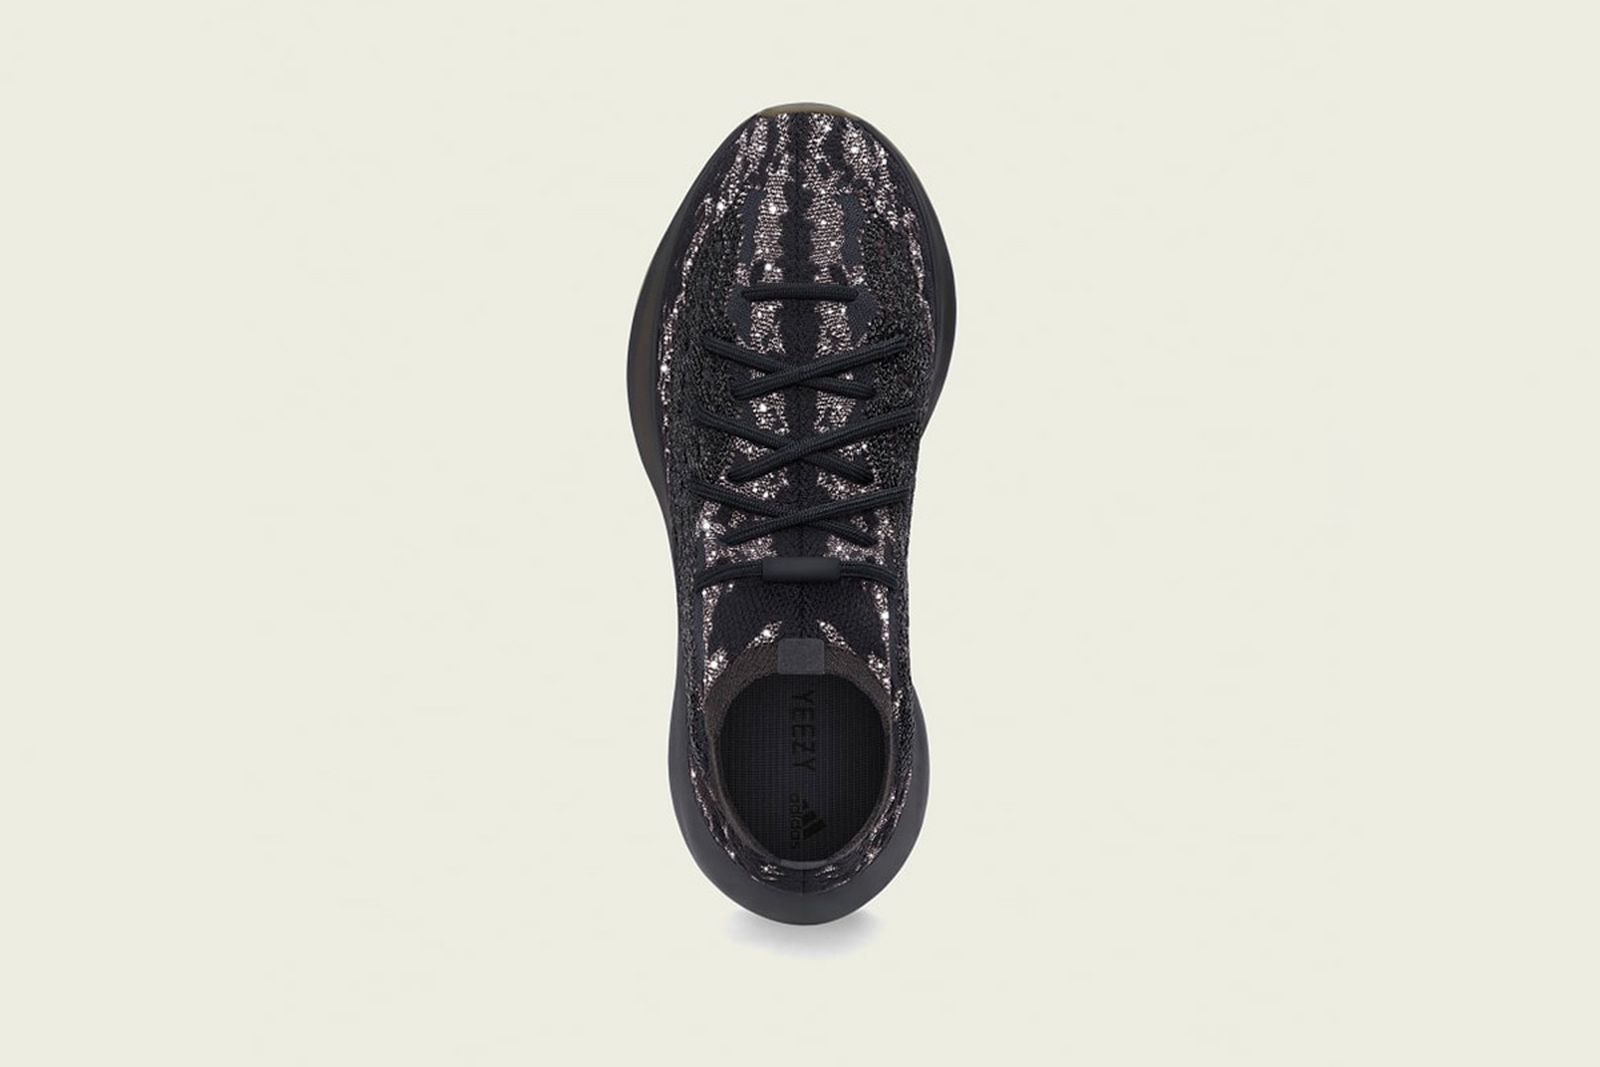 adidas-yeezy-boost-380-onyx-release-date-price-04